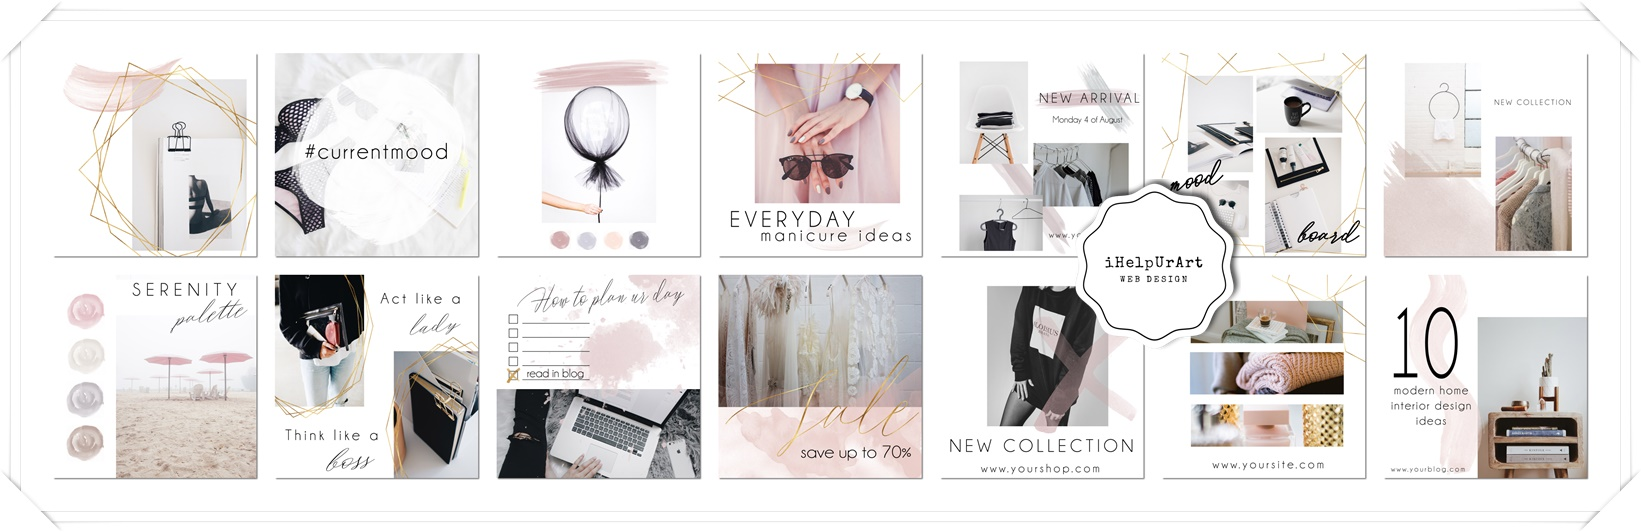 14 Editable Instagram Posts Templates PSD example image 3